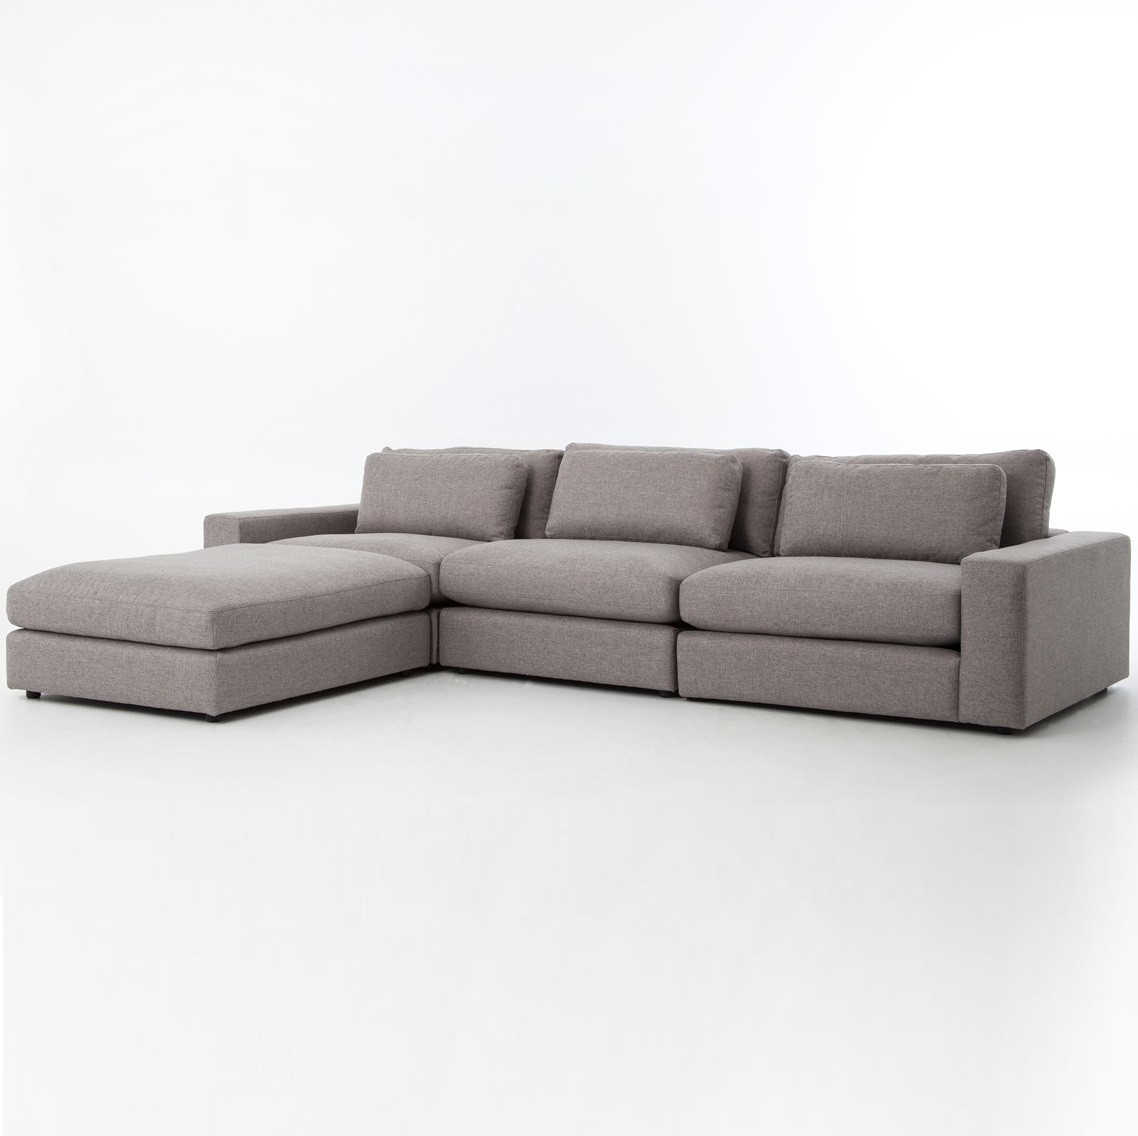 Bloor Gray Contemporary 4 Piece Sectional Sofa Zin Home